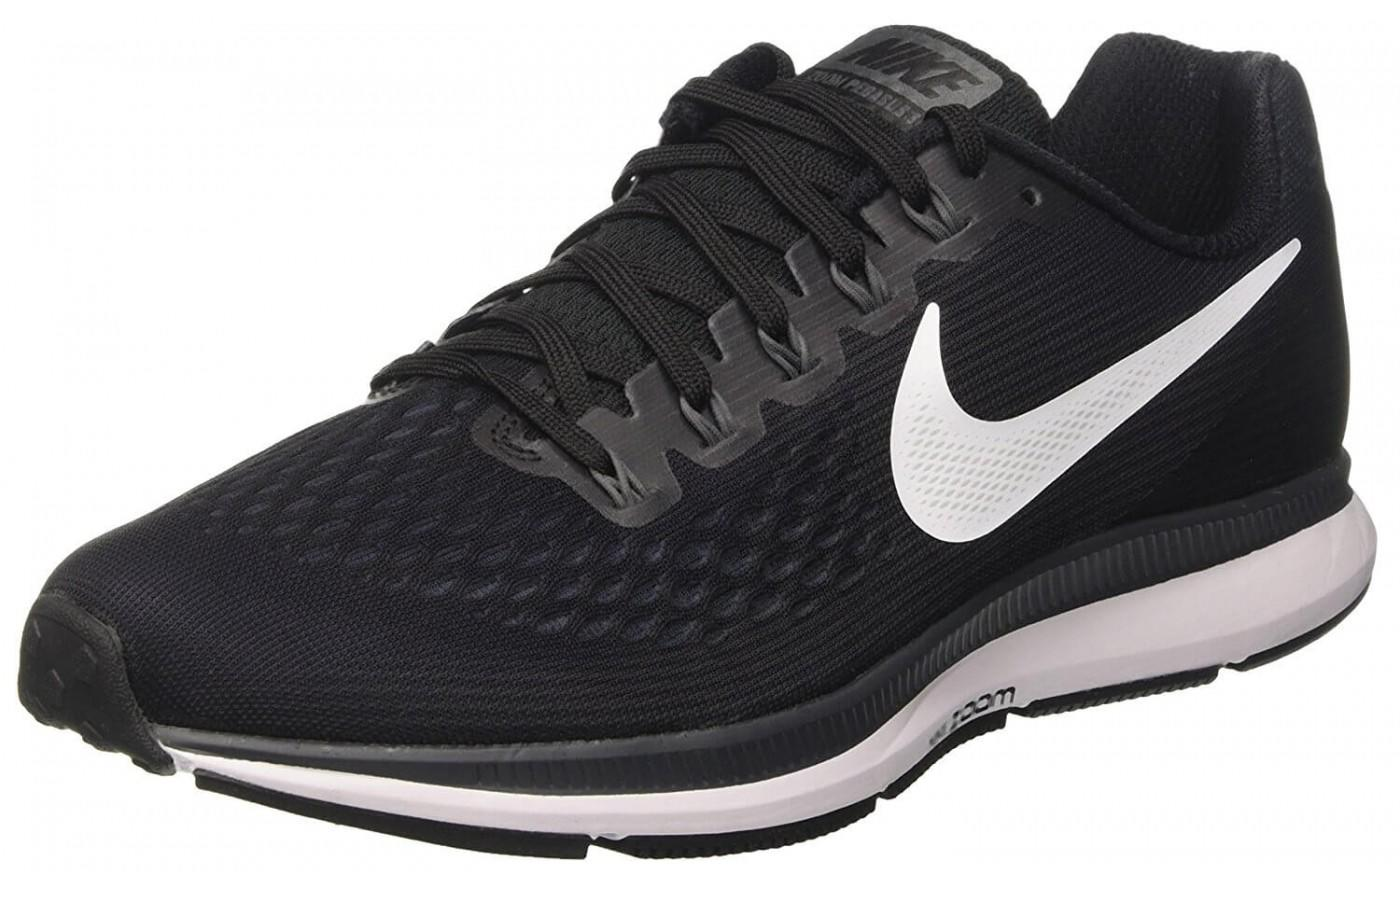 75d0ef11975b9 the upper of the Nike Air Zoom Pegasus 34 is made of breathable Flymesh ...